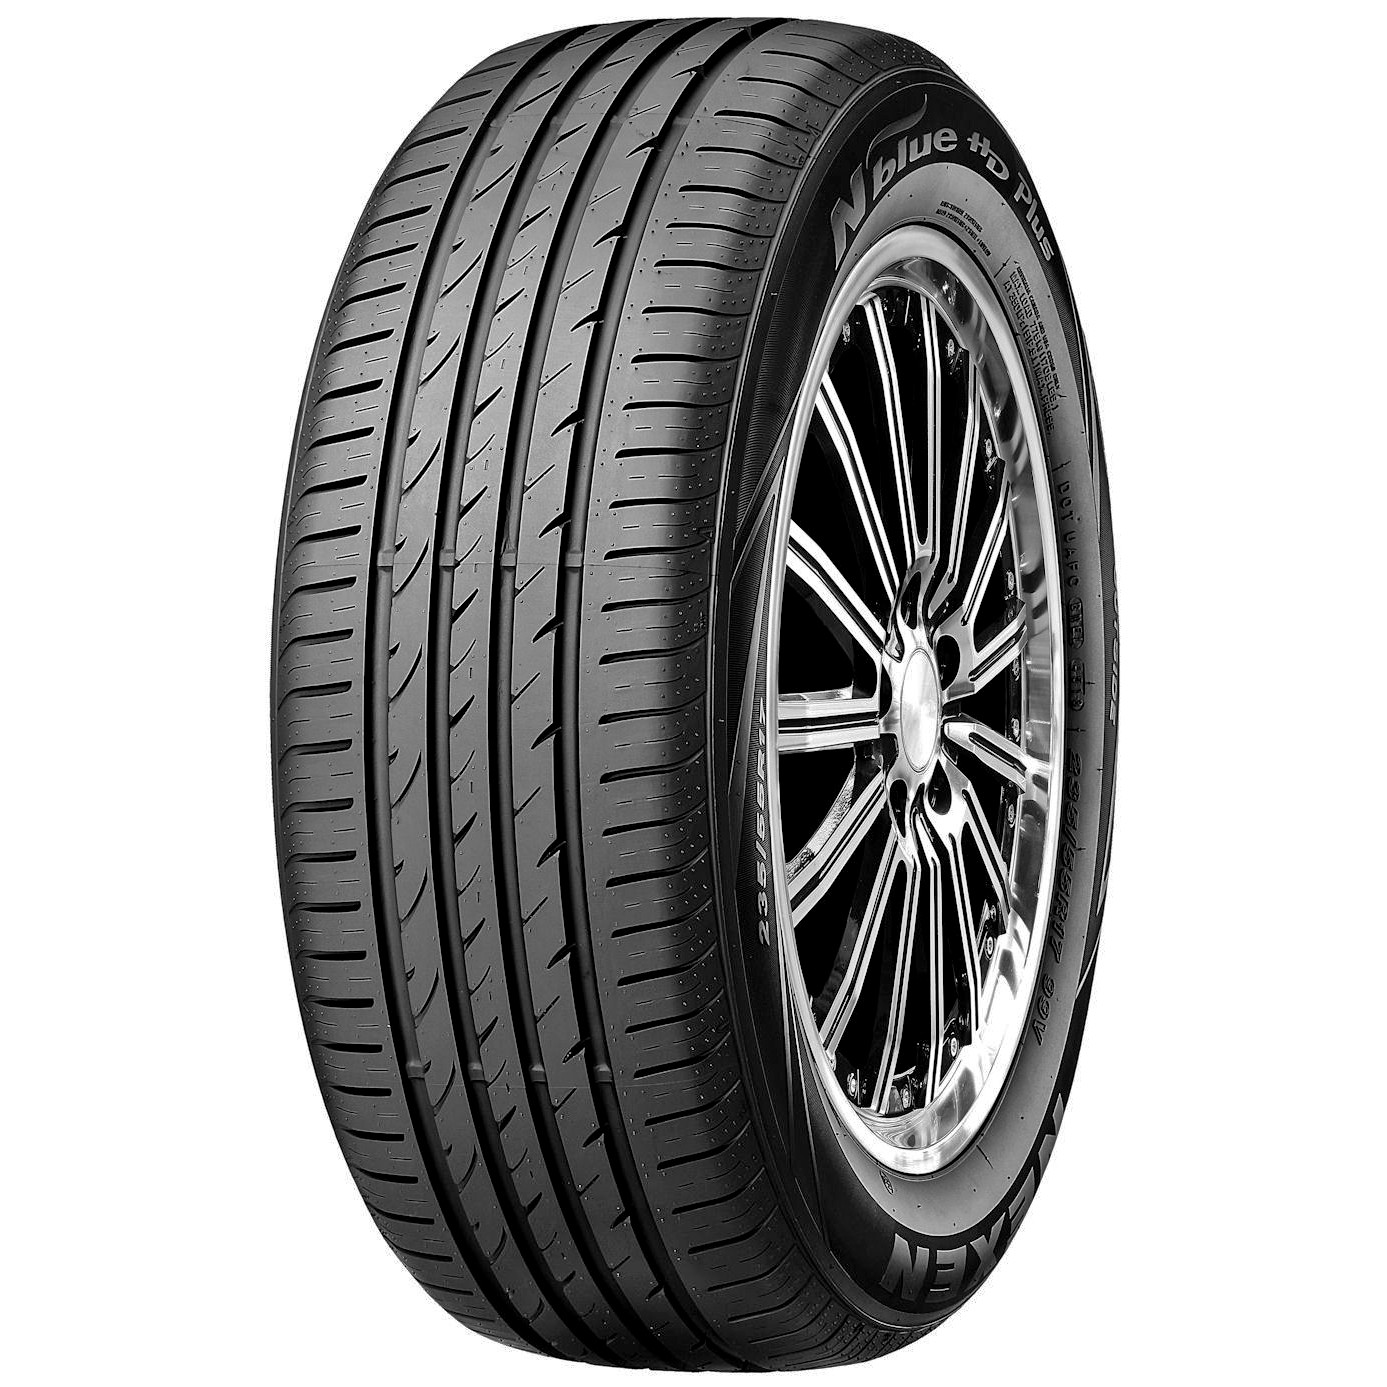 Летняя шина Nexen N'blue HD Plus 185/55 R14 80H